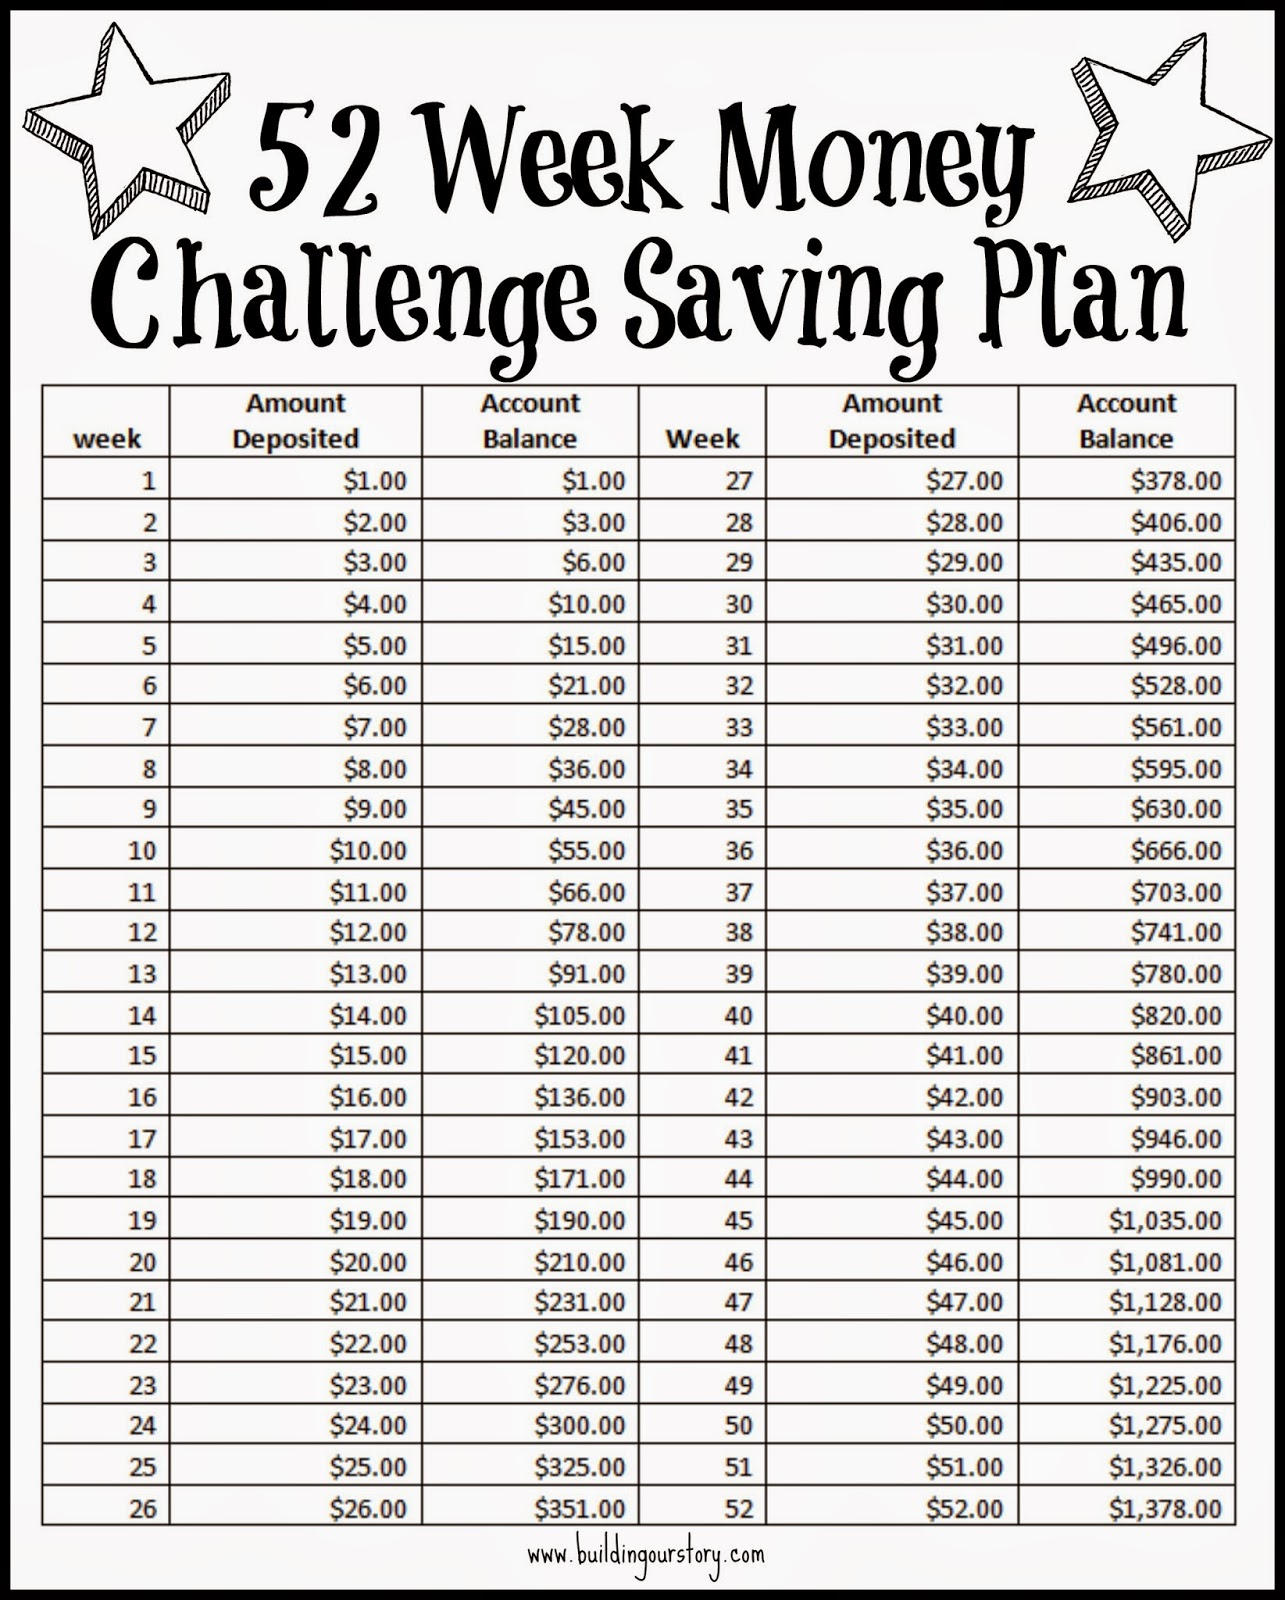 52 Week Money Challenge Saving Plan - Free Printable ...